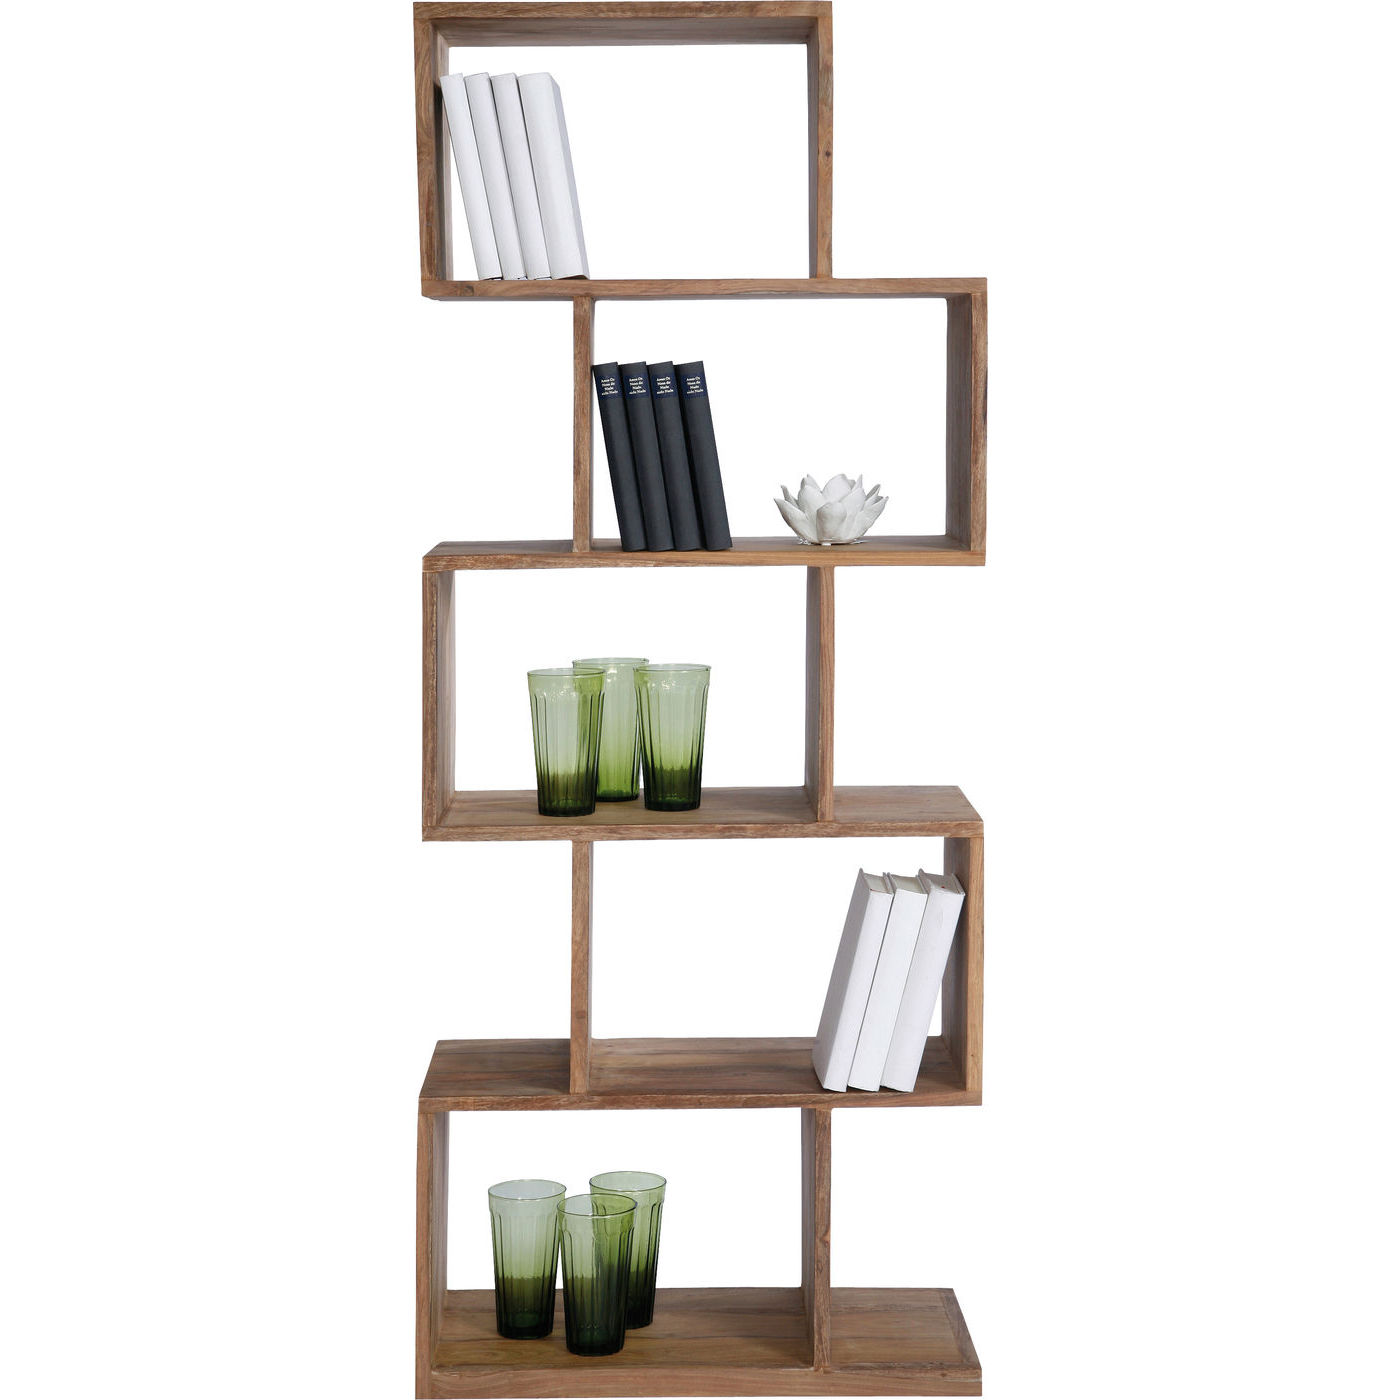 Kare design authentico shelf zick zack reol - natur sheeshamtræ (150cm)